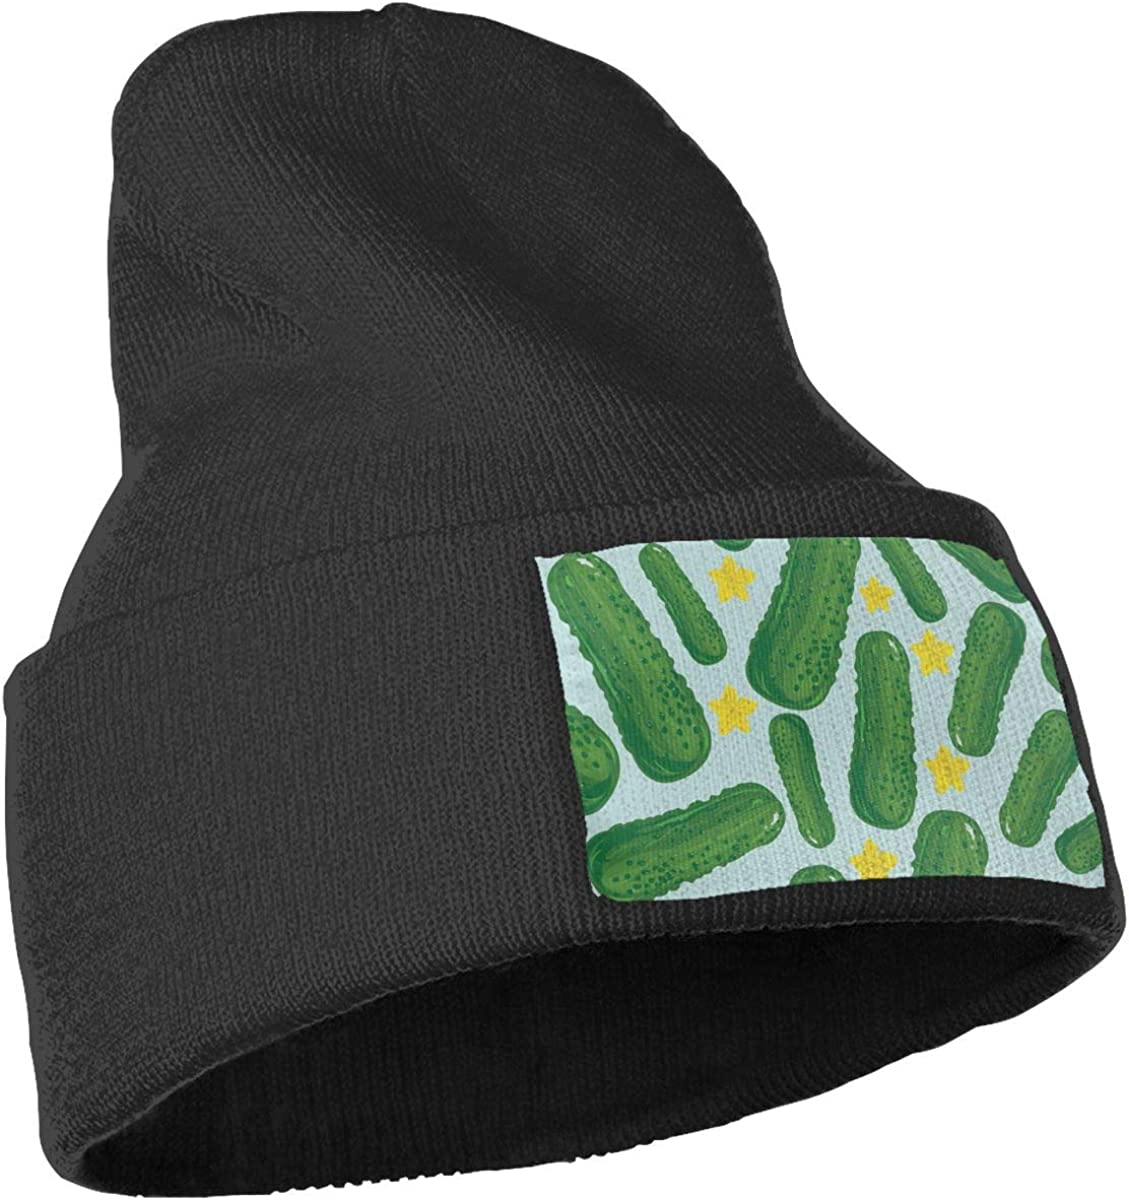 Pickles Stars Winter Wool Cap Warm Beanies Knitted Hat